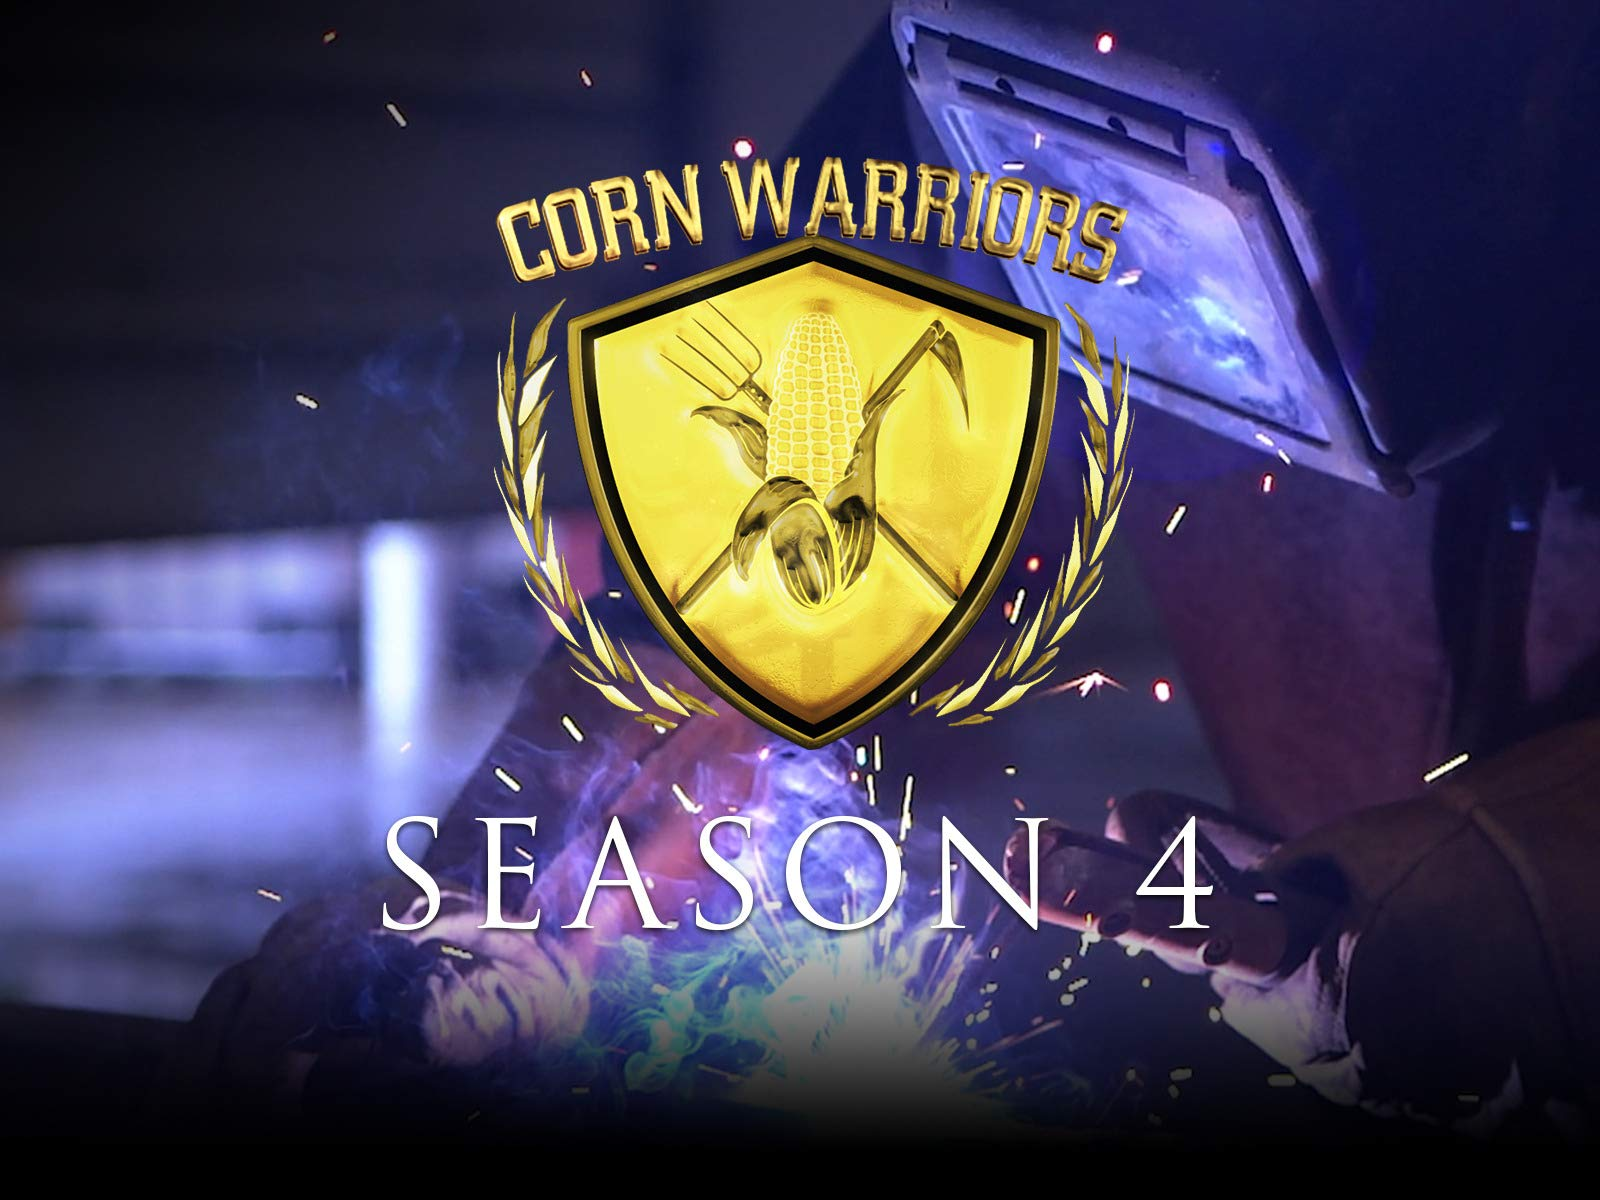 Corn Warriors - Season 4